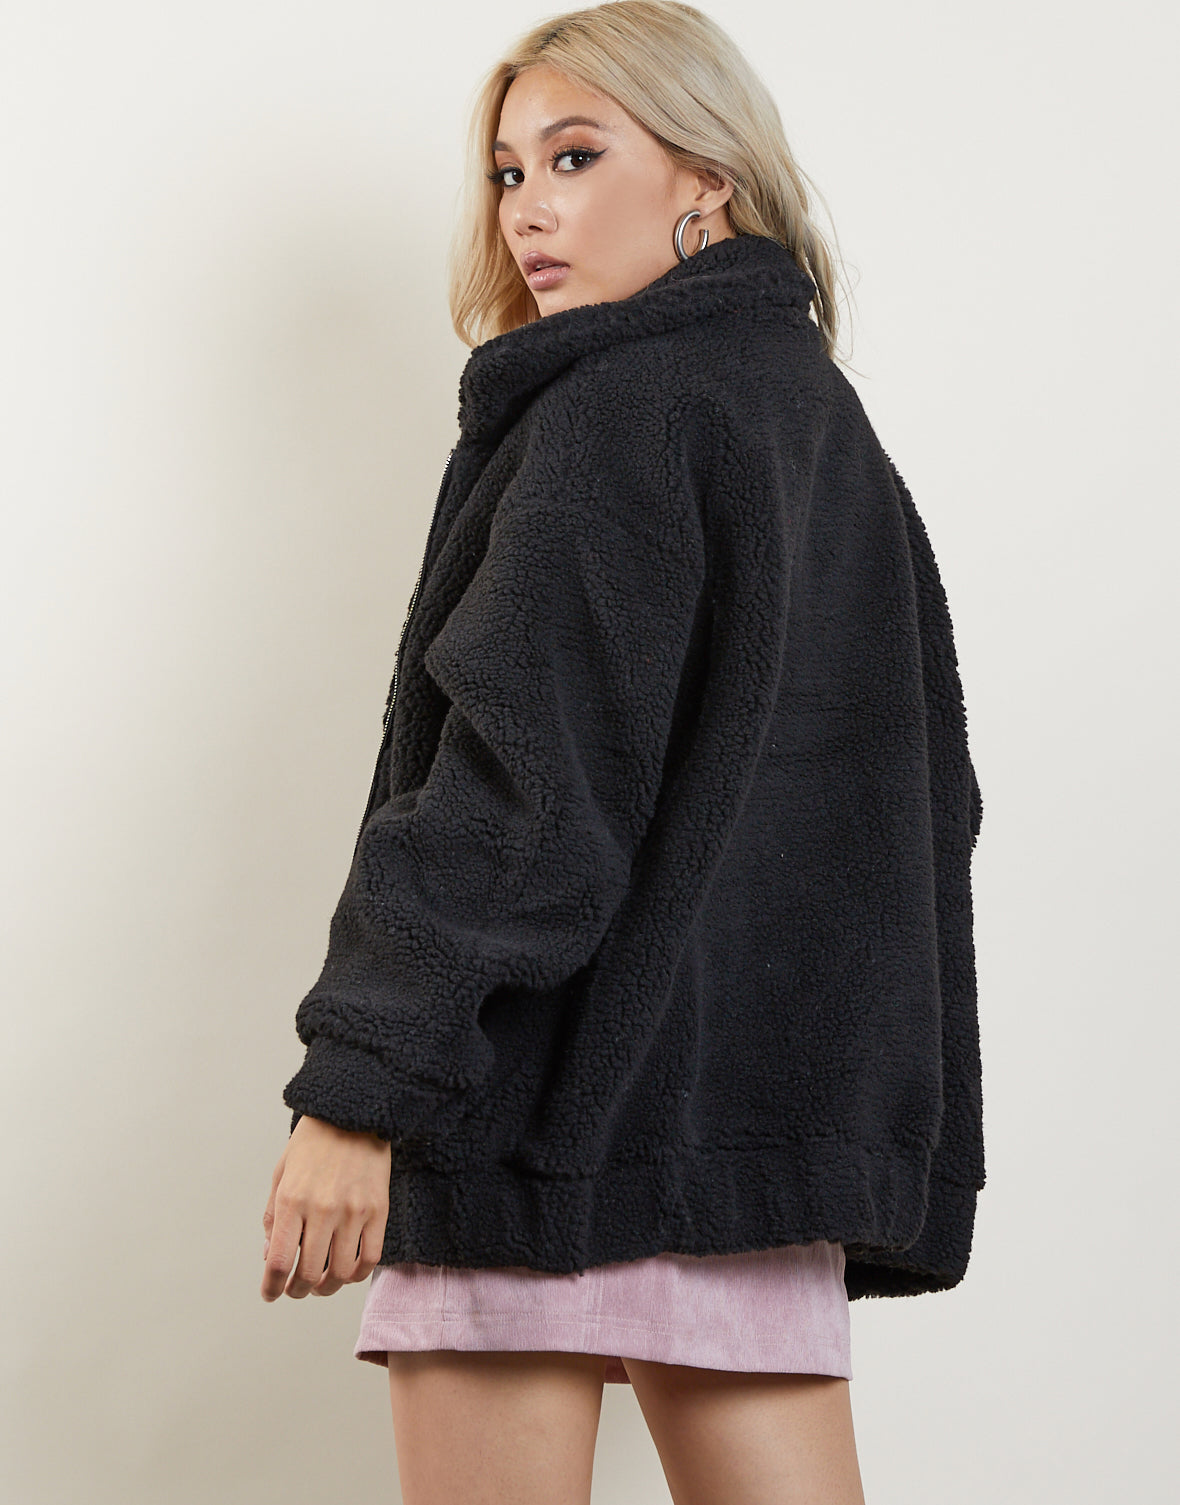 Just Faux You Oversized Sherpa Jacket